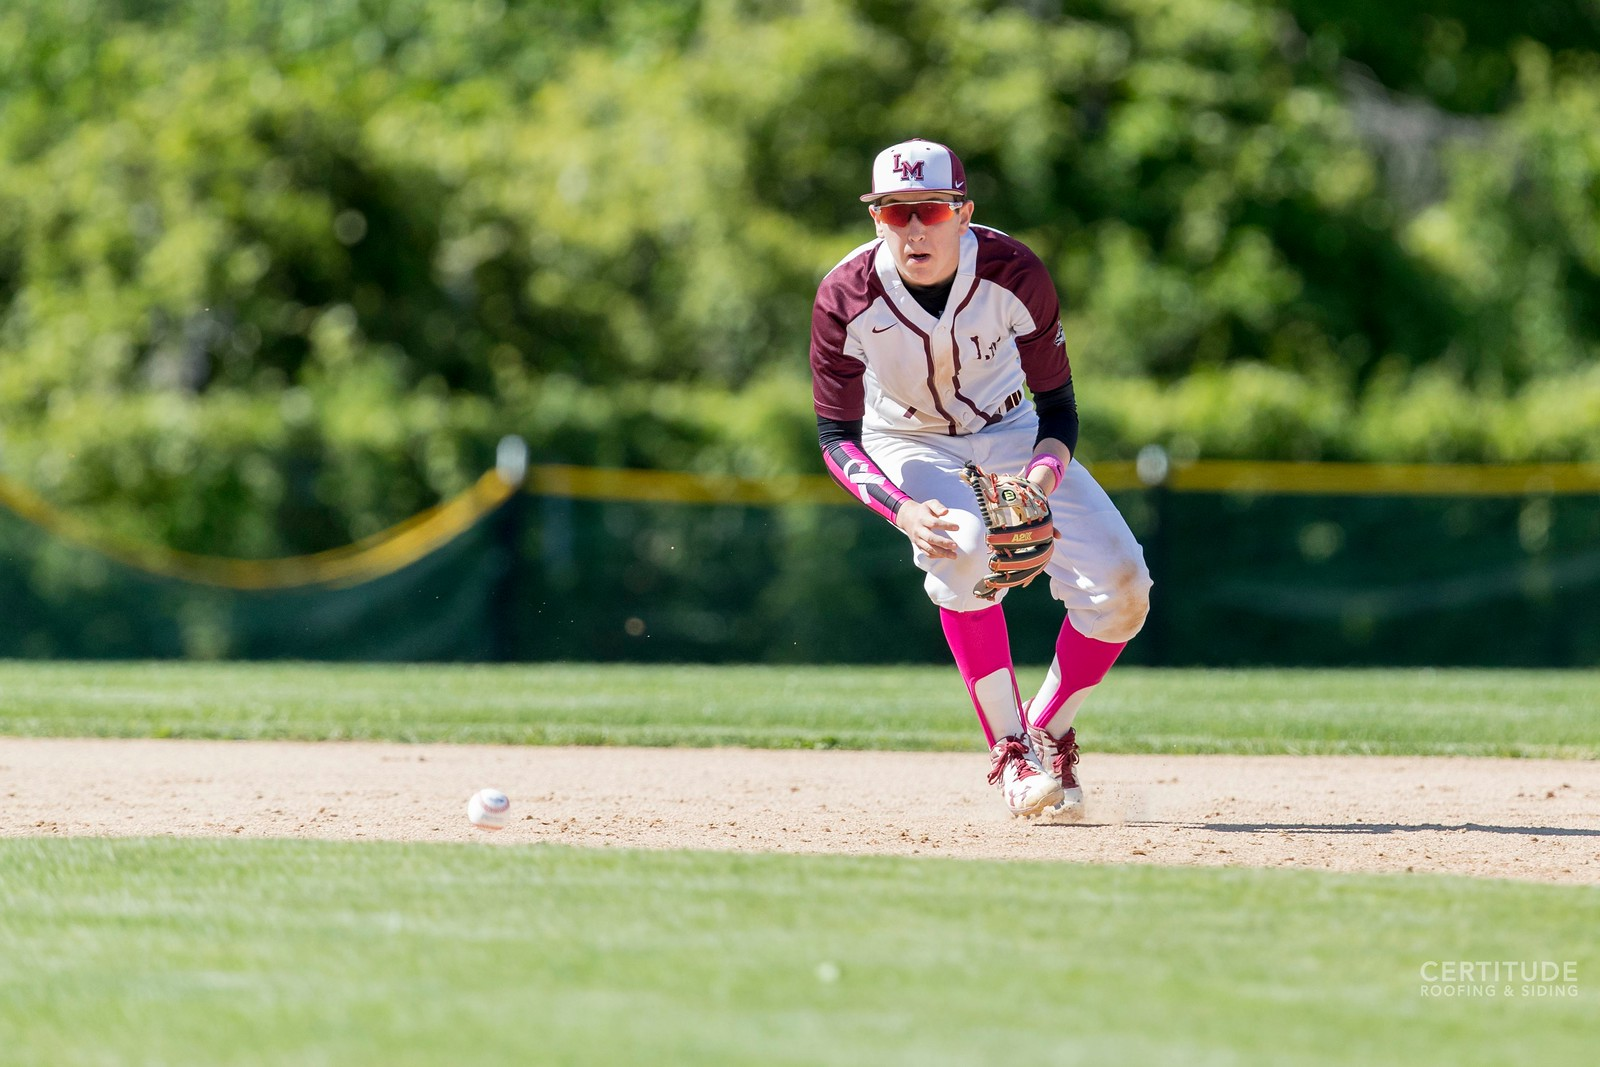 Lower_Merion_BASEBALL_vs_Conestoga-133